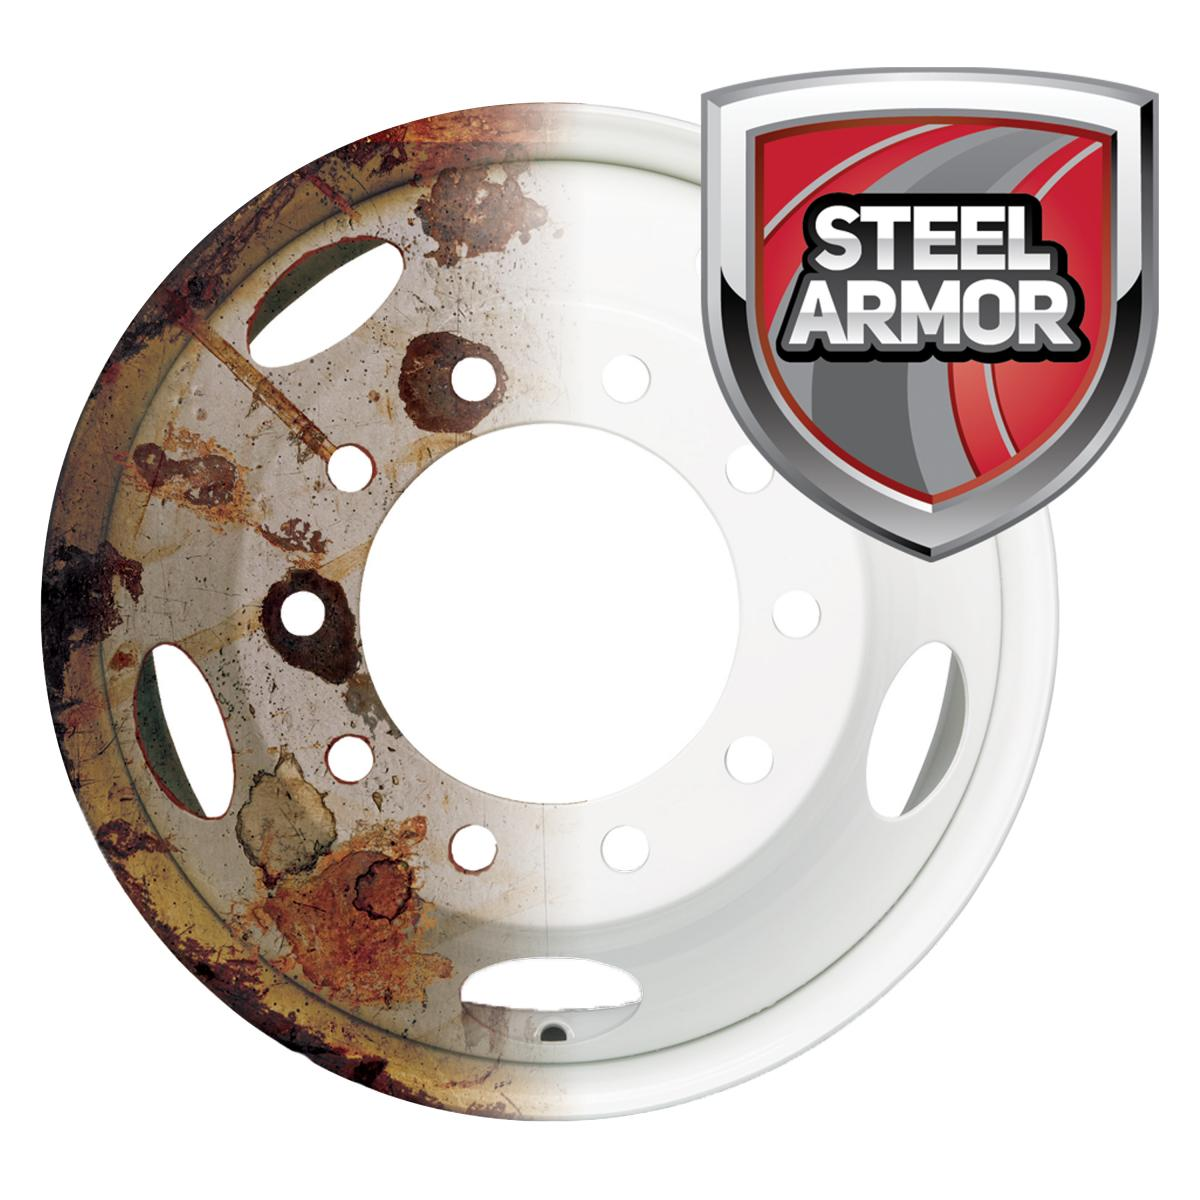 Accuride's Steel Armor™